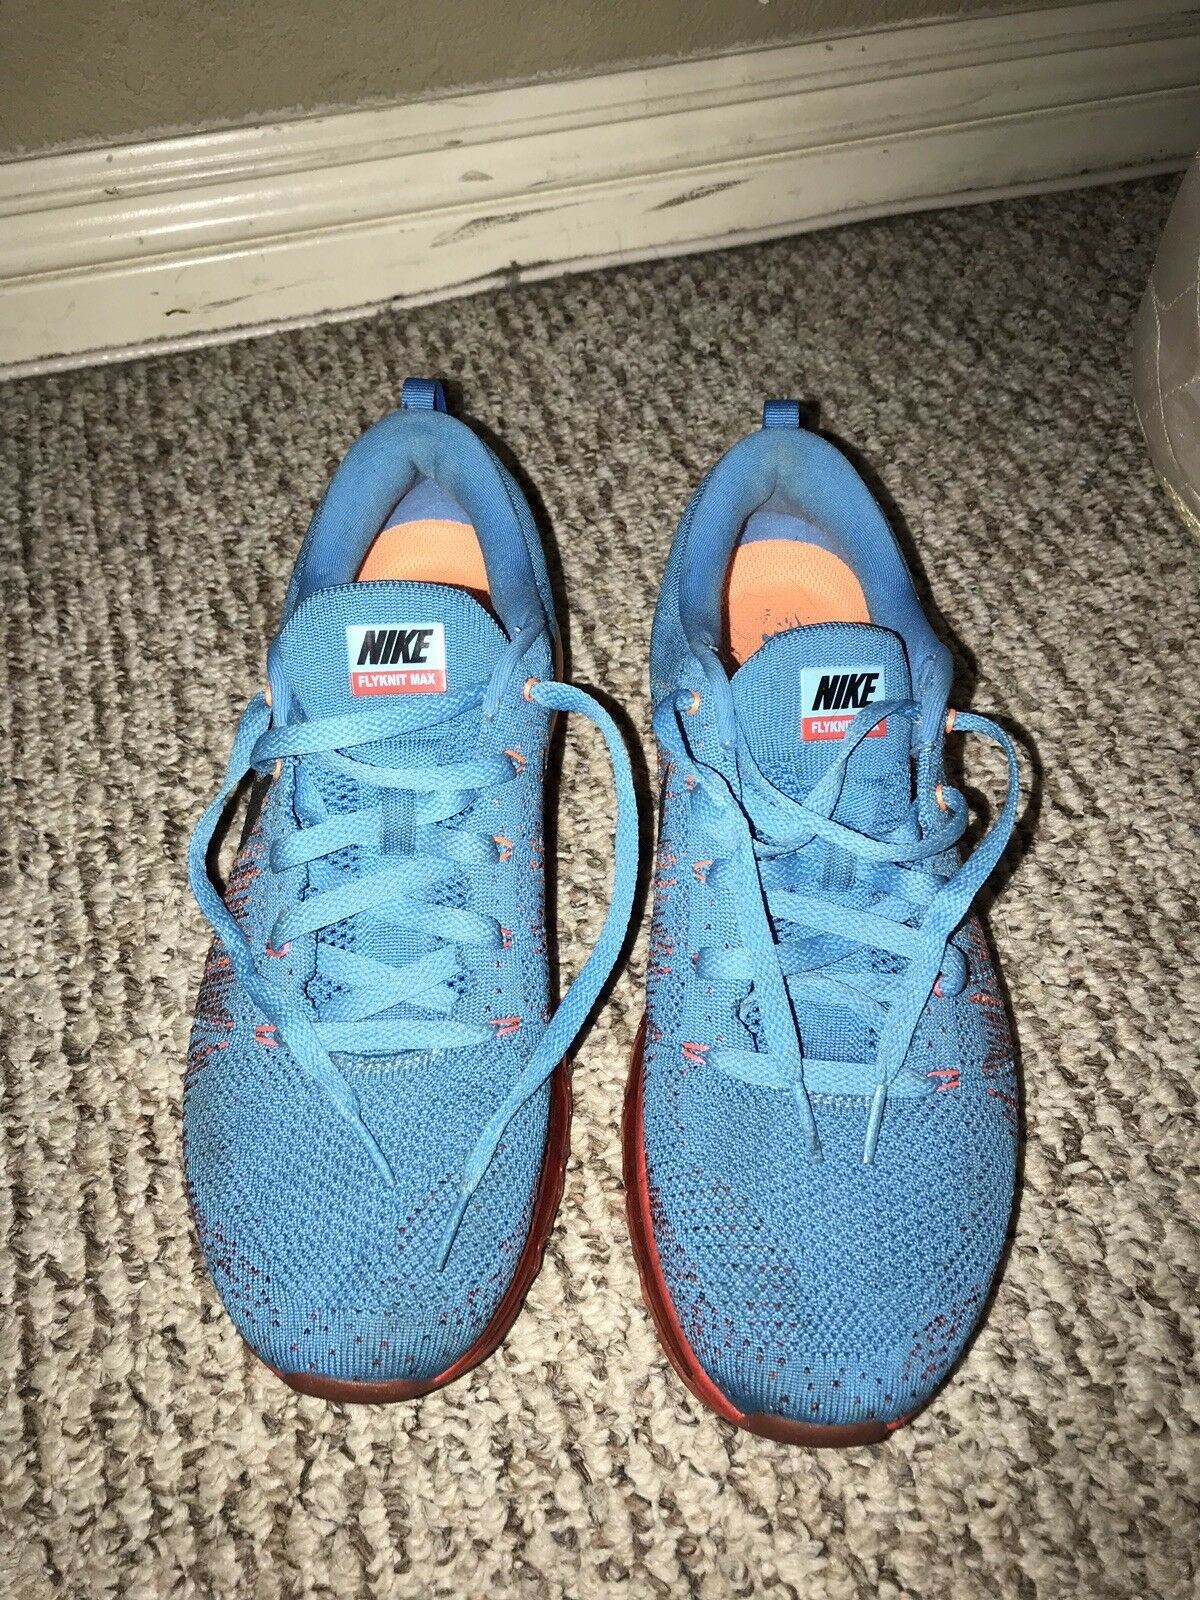 AUTHENTIC Nike Flyknit Max Shoes in Blue-Orange SIZE 9